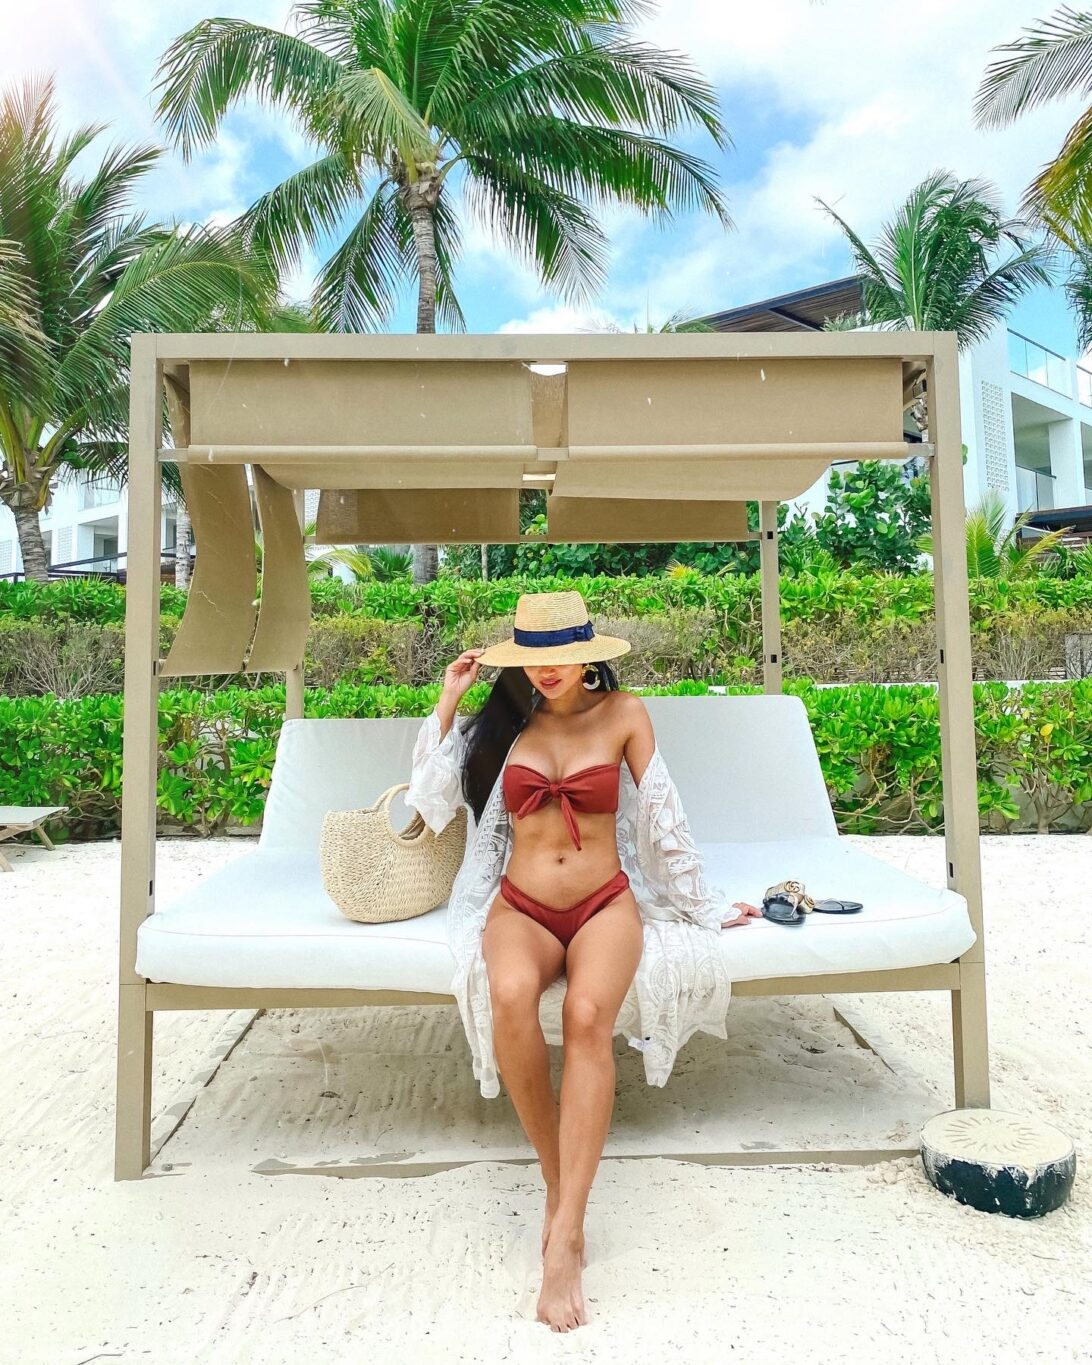 tie front bikini, exclusive club, beach beds, Playa Mujeres, All inclusive resorts, Mexico